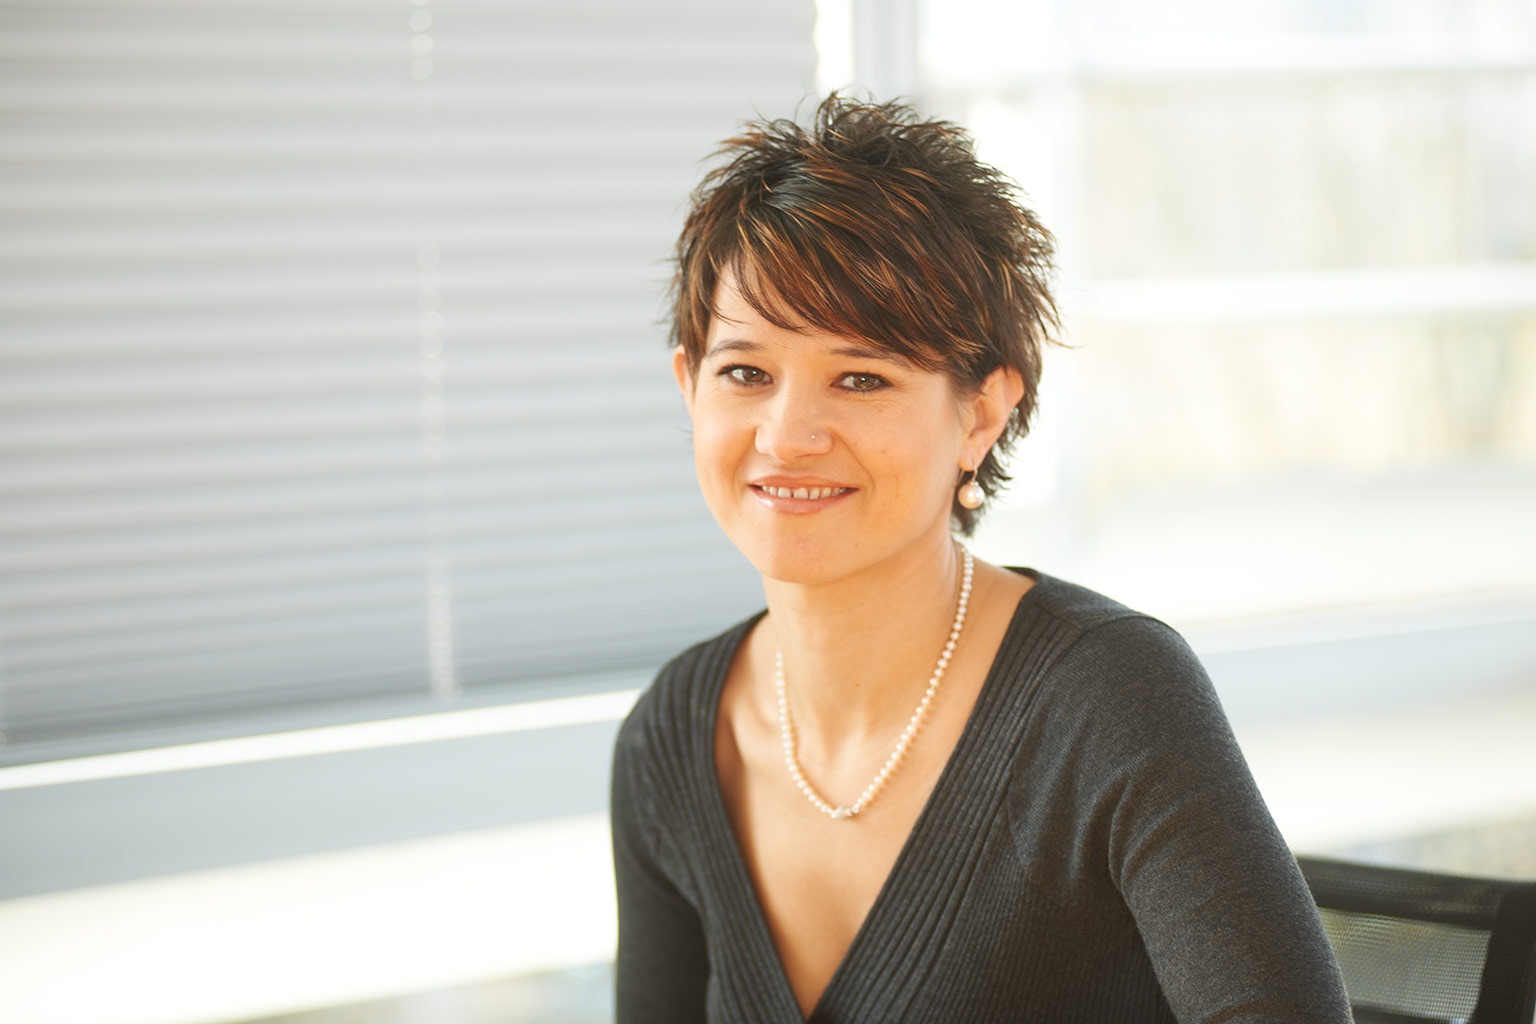 Ansprechpartner Maria Stabel